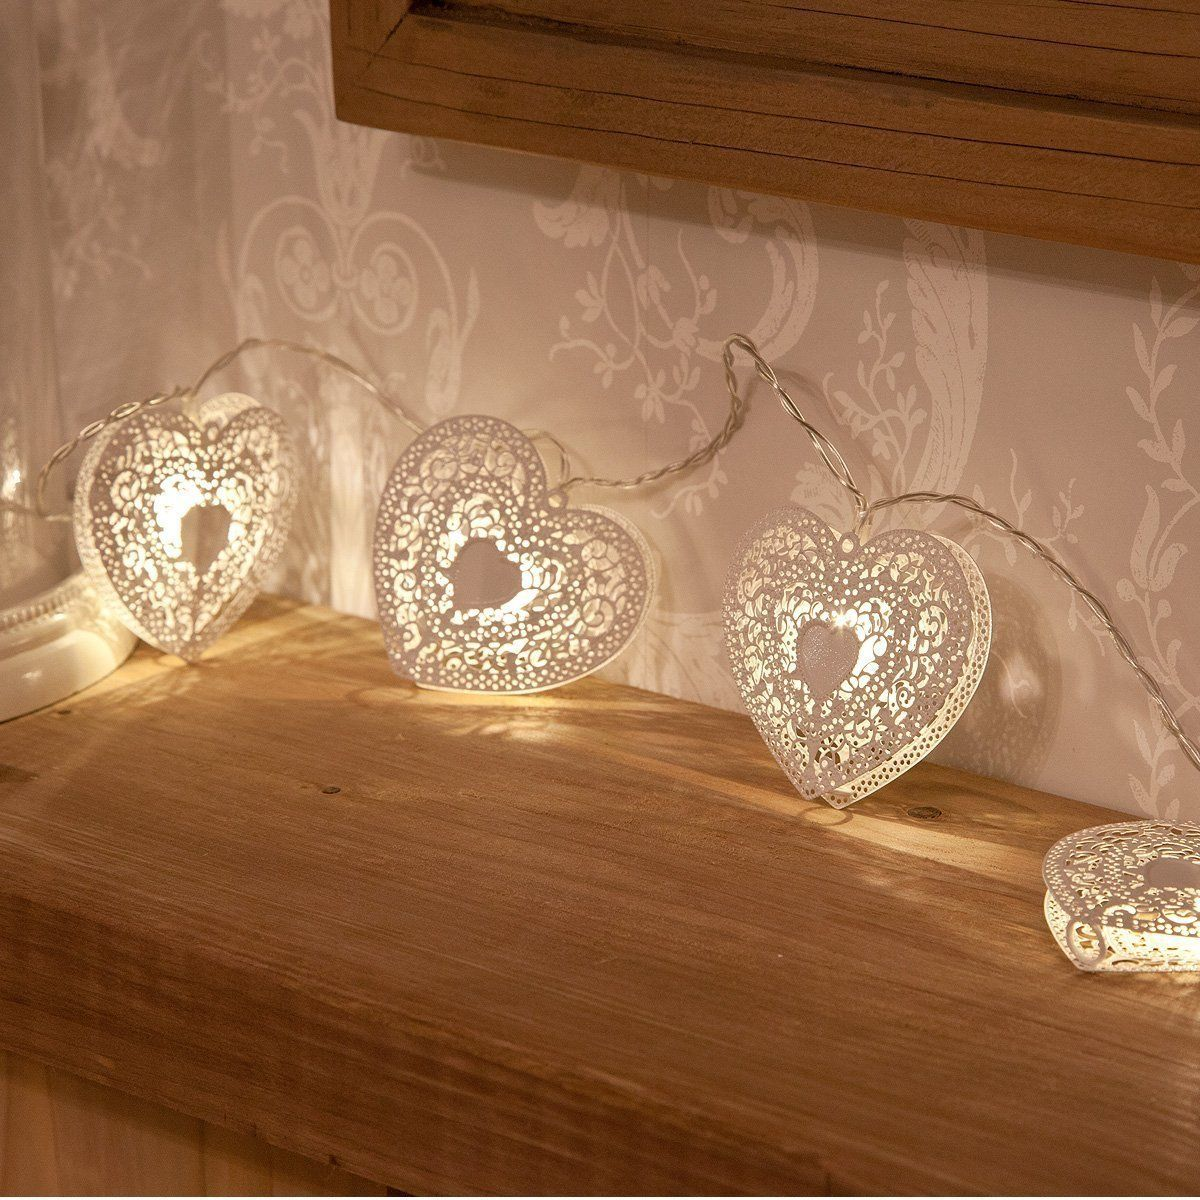 with february 14 approaching set the mood with romantic valentine lighting heart shaped string - Valentine String Lights